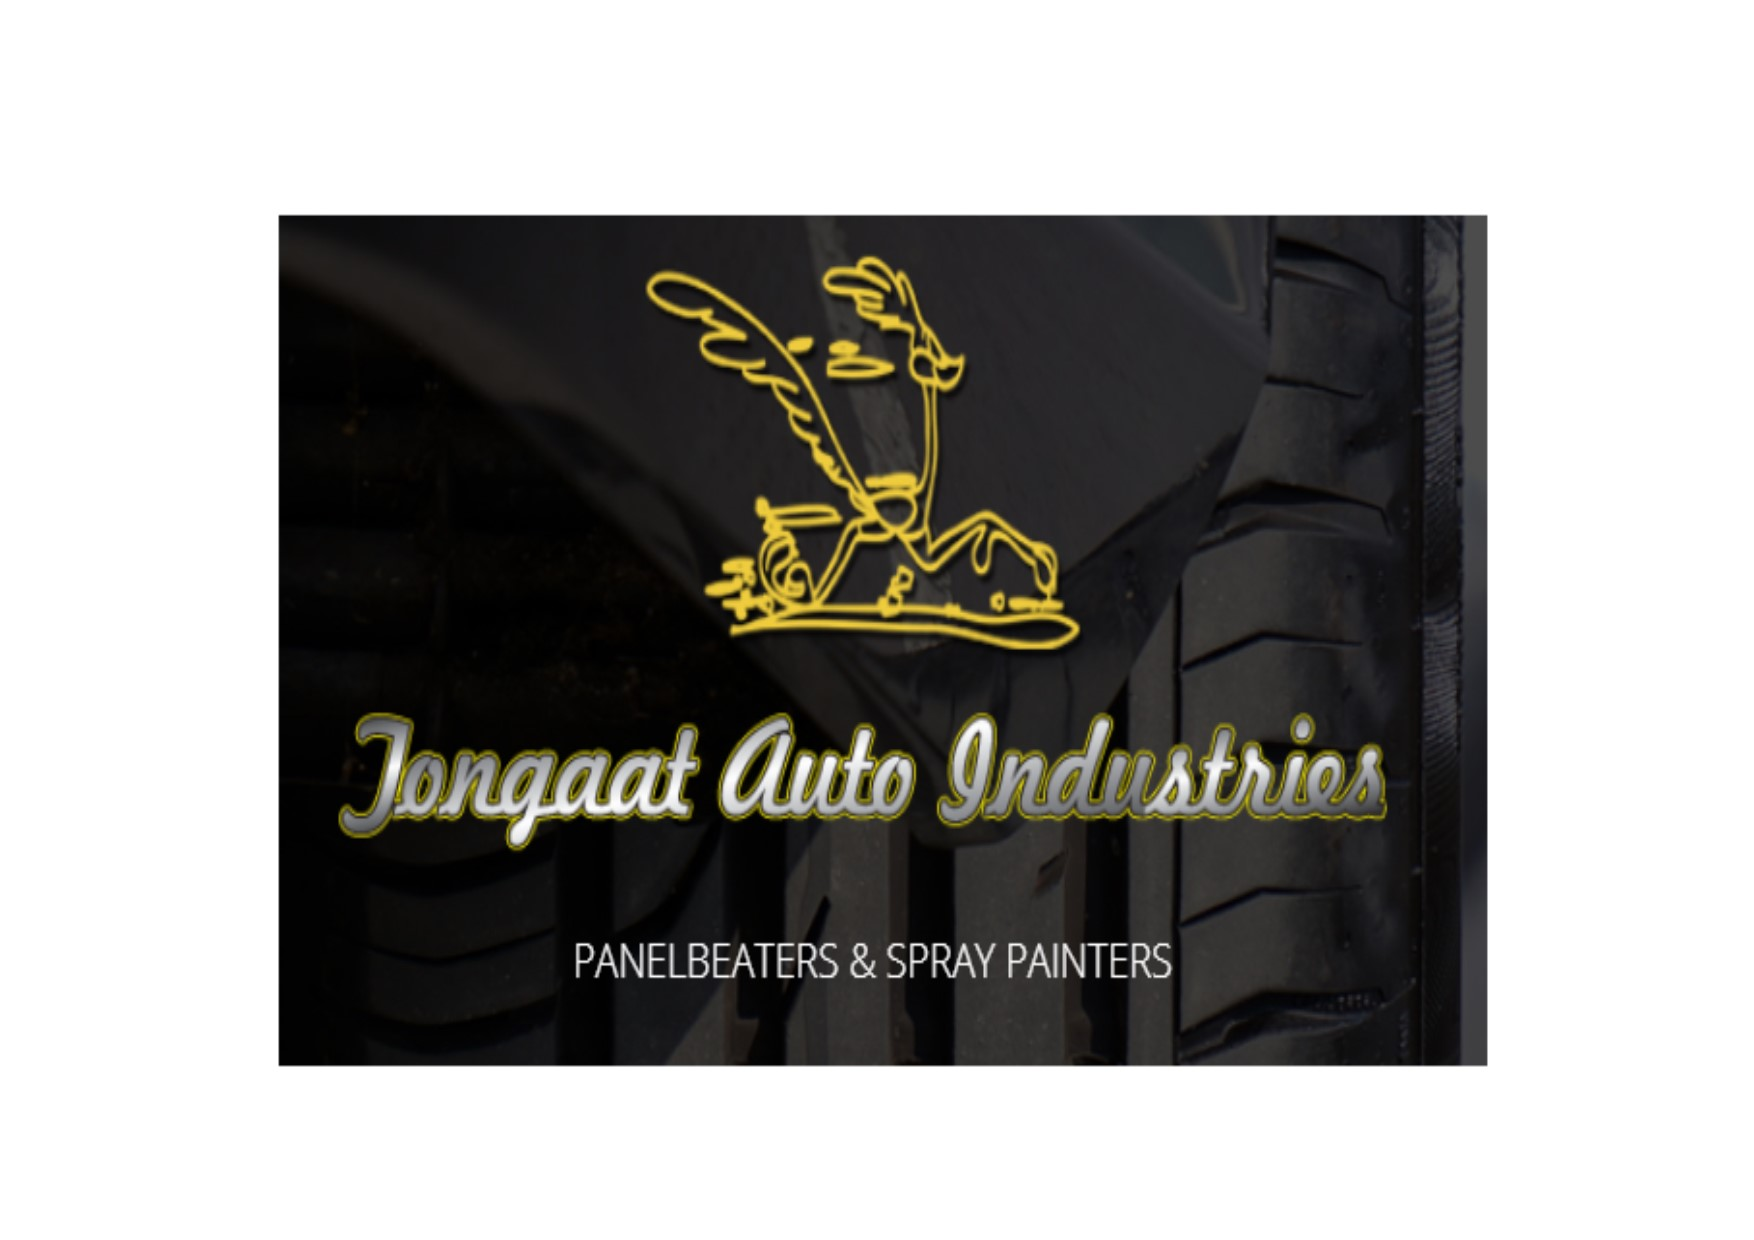 Logo of Tongaat Auto Industries (Pty) Ltd